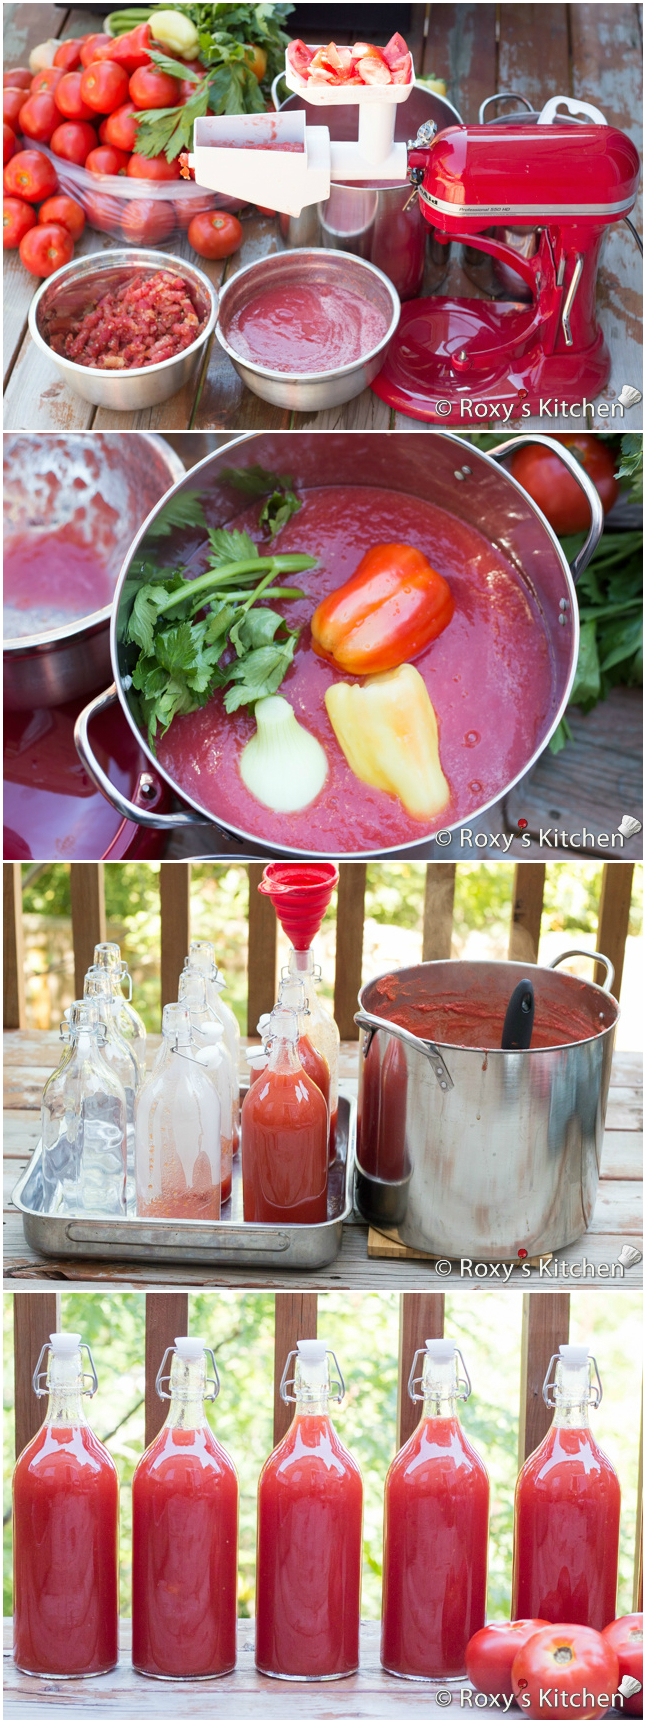 Tomato juice for the winter - recipes for very tasty tomato juice at home 30